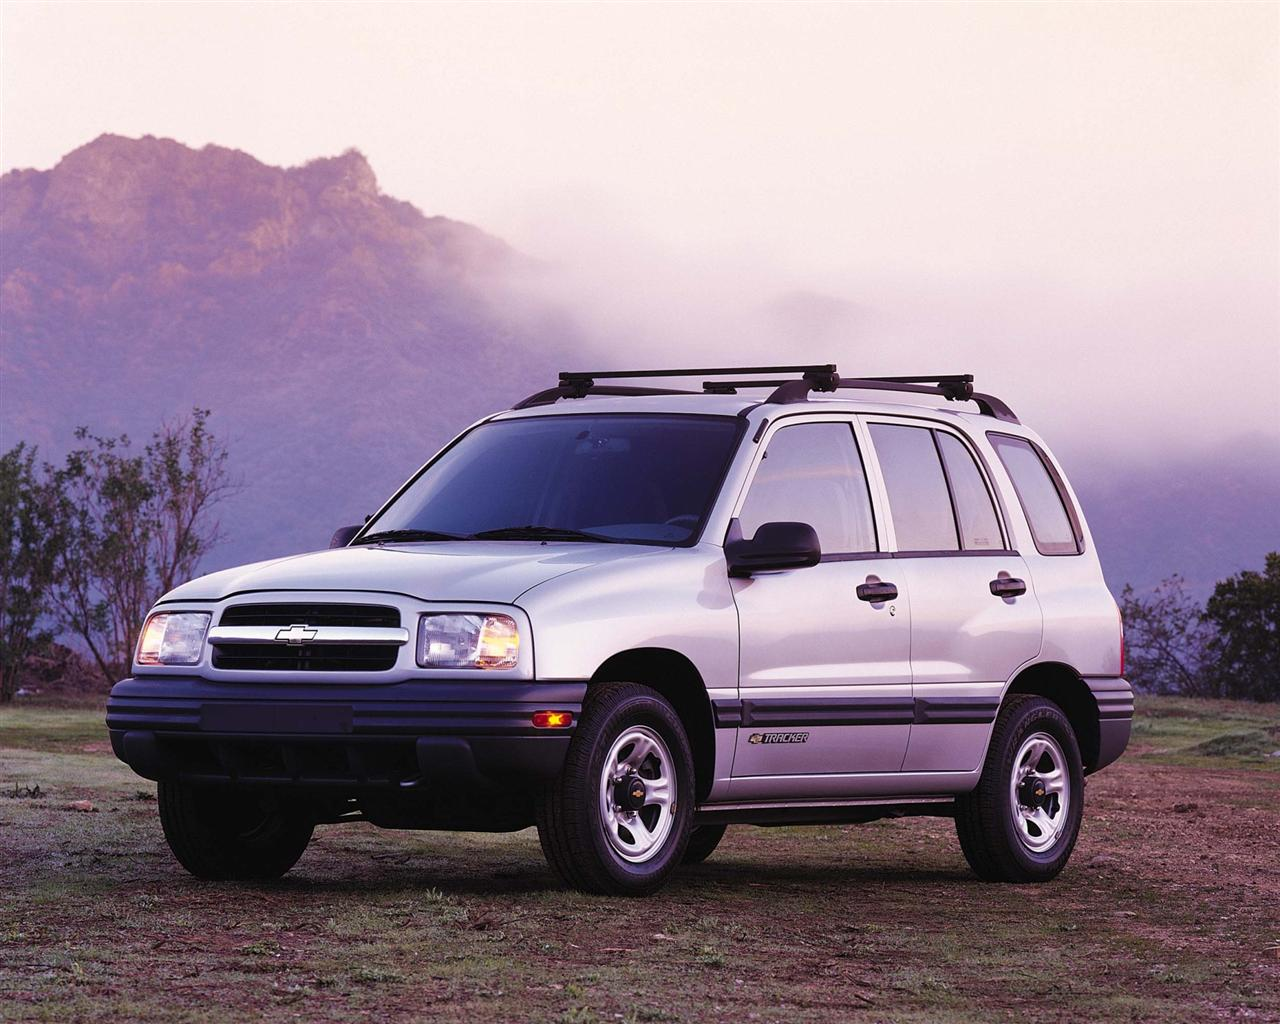 Chevrolet Latest Models >> 2000 Chevrolet Tracker - Information and photos - MOMENTcar